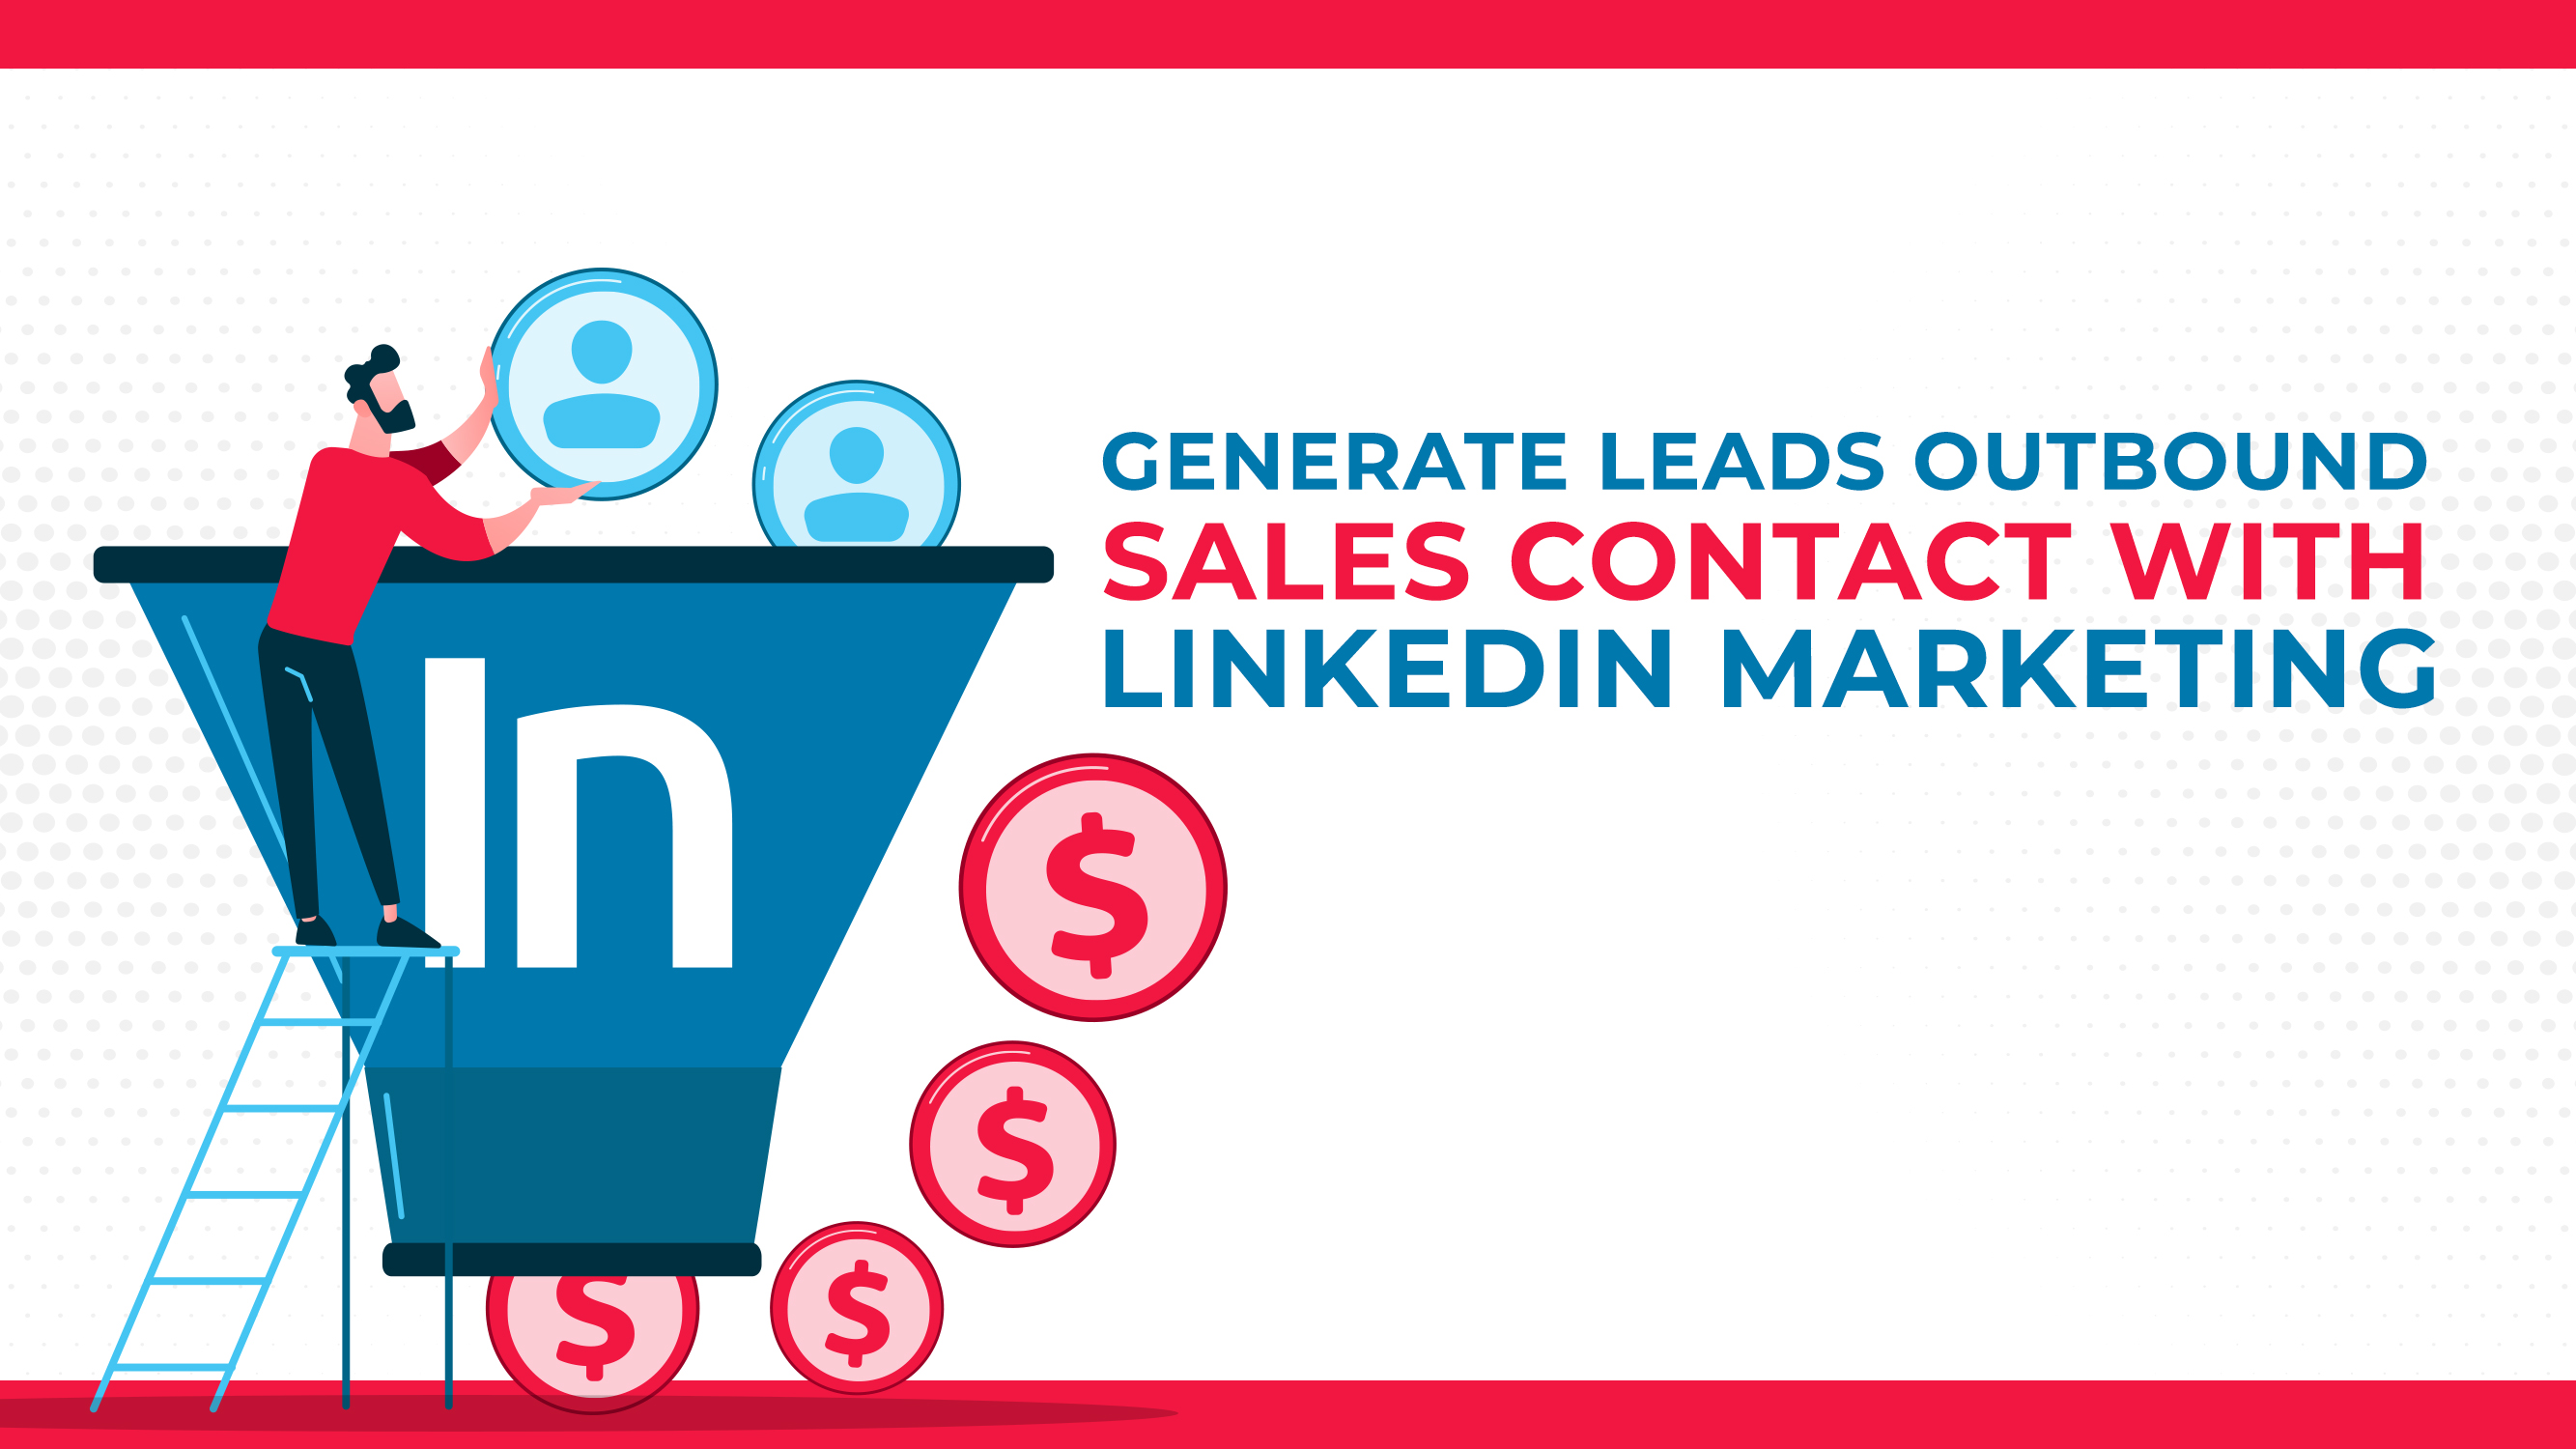 Generate Leads Outbound Sales Contact With LinkedIn Marketing